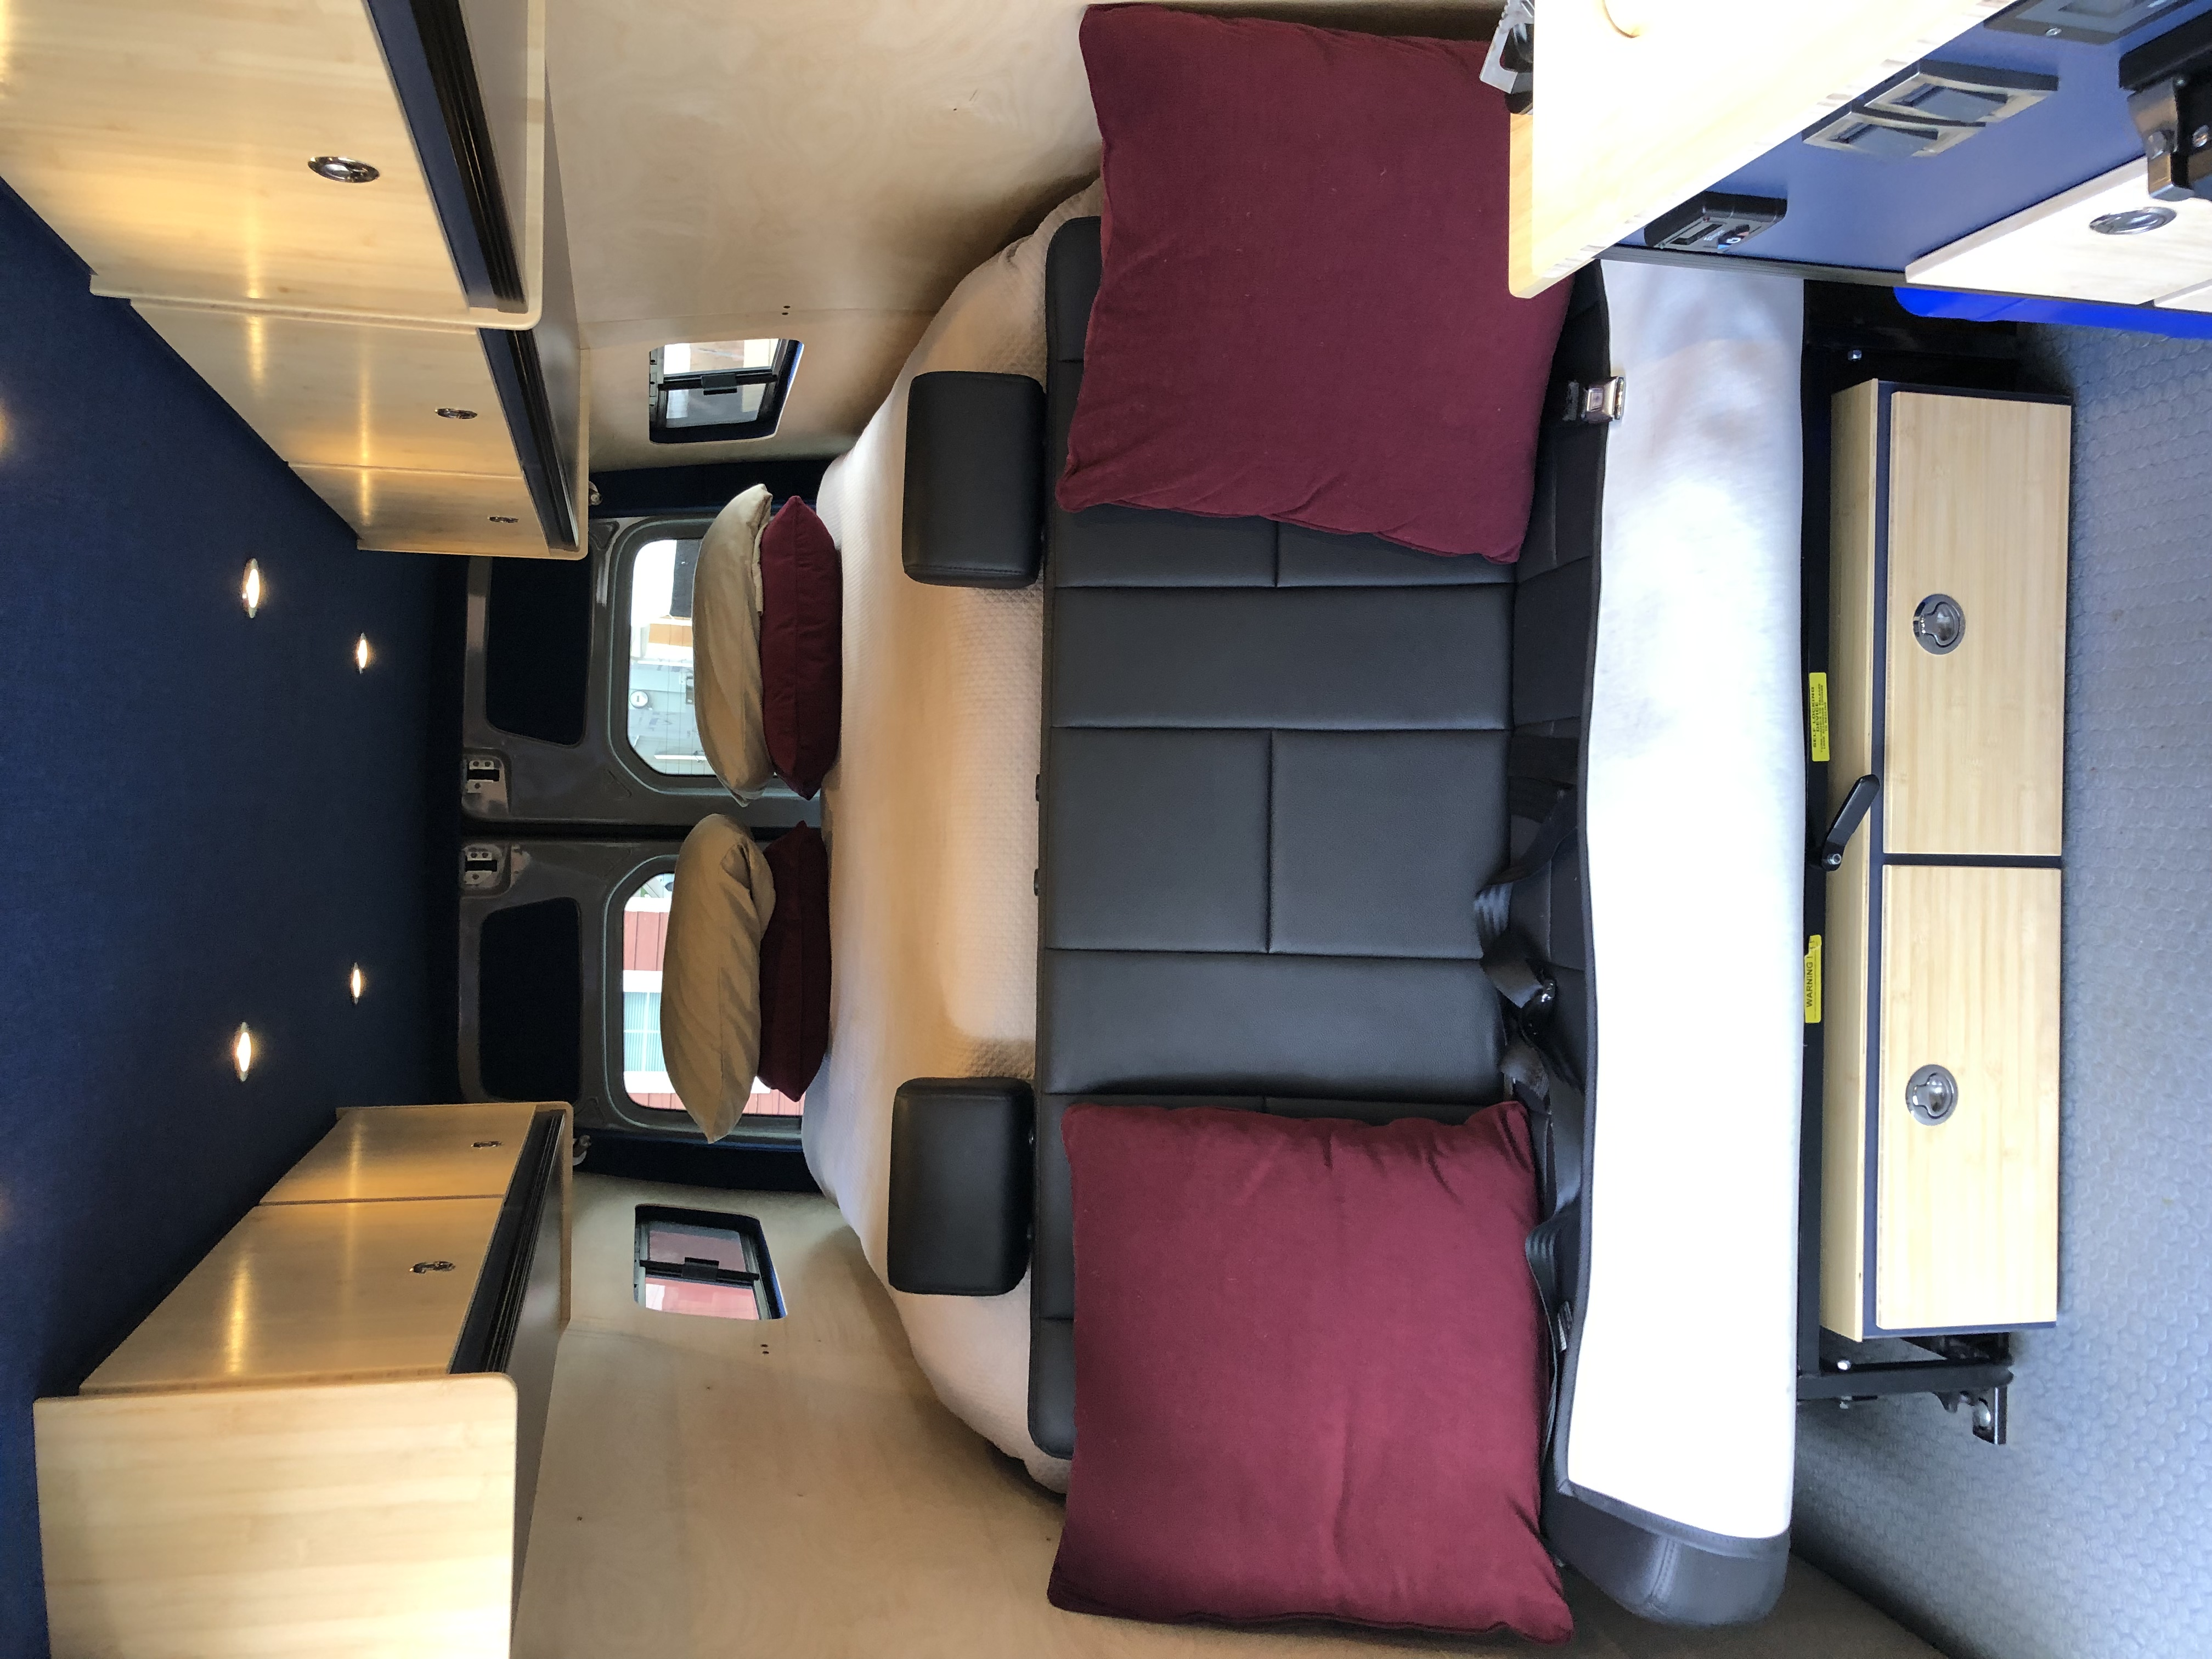 Queen size amazing bed. Reading lamps on both sides controlled while snuggled in bed. Sofa with seat belts for additional passengers. . Mercedes-Benz Other 2018